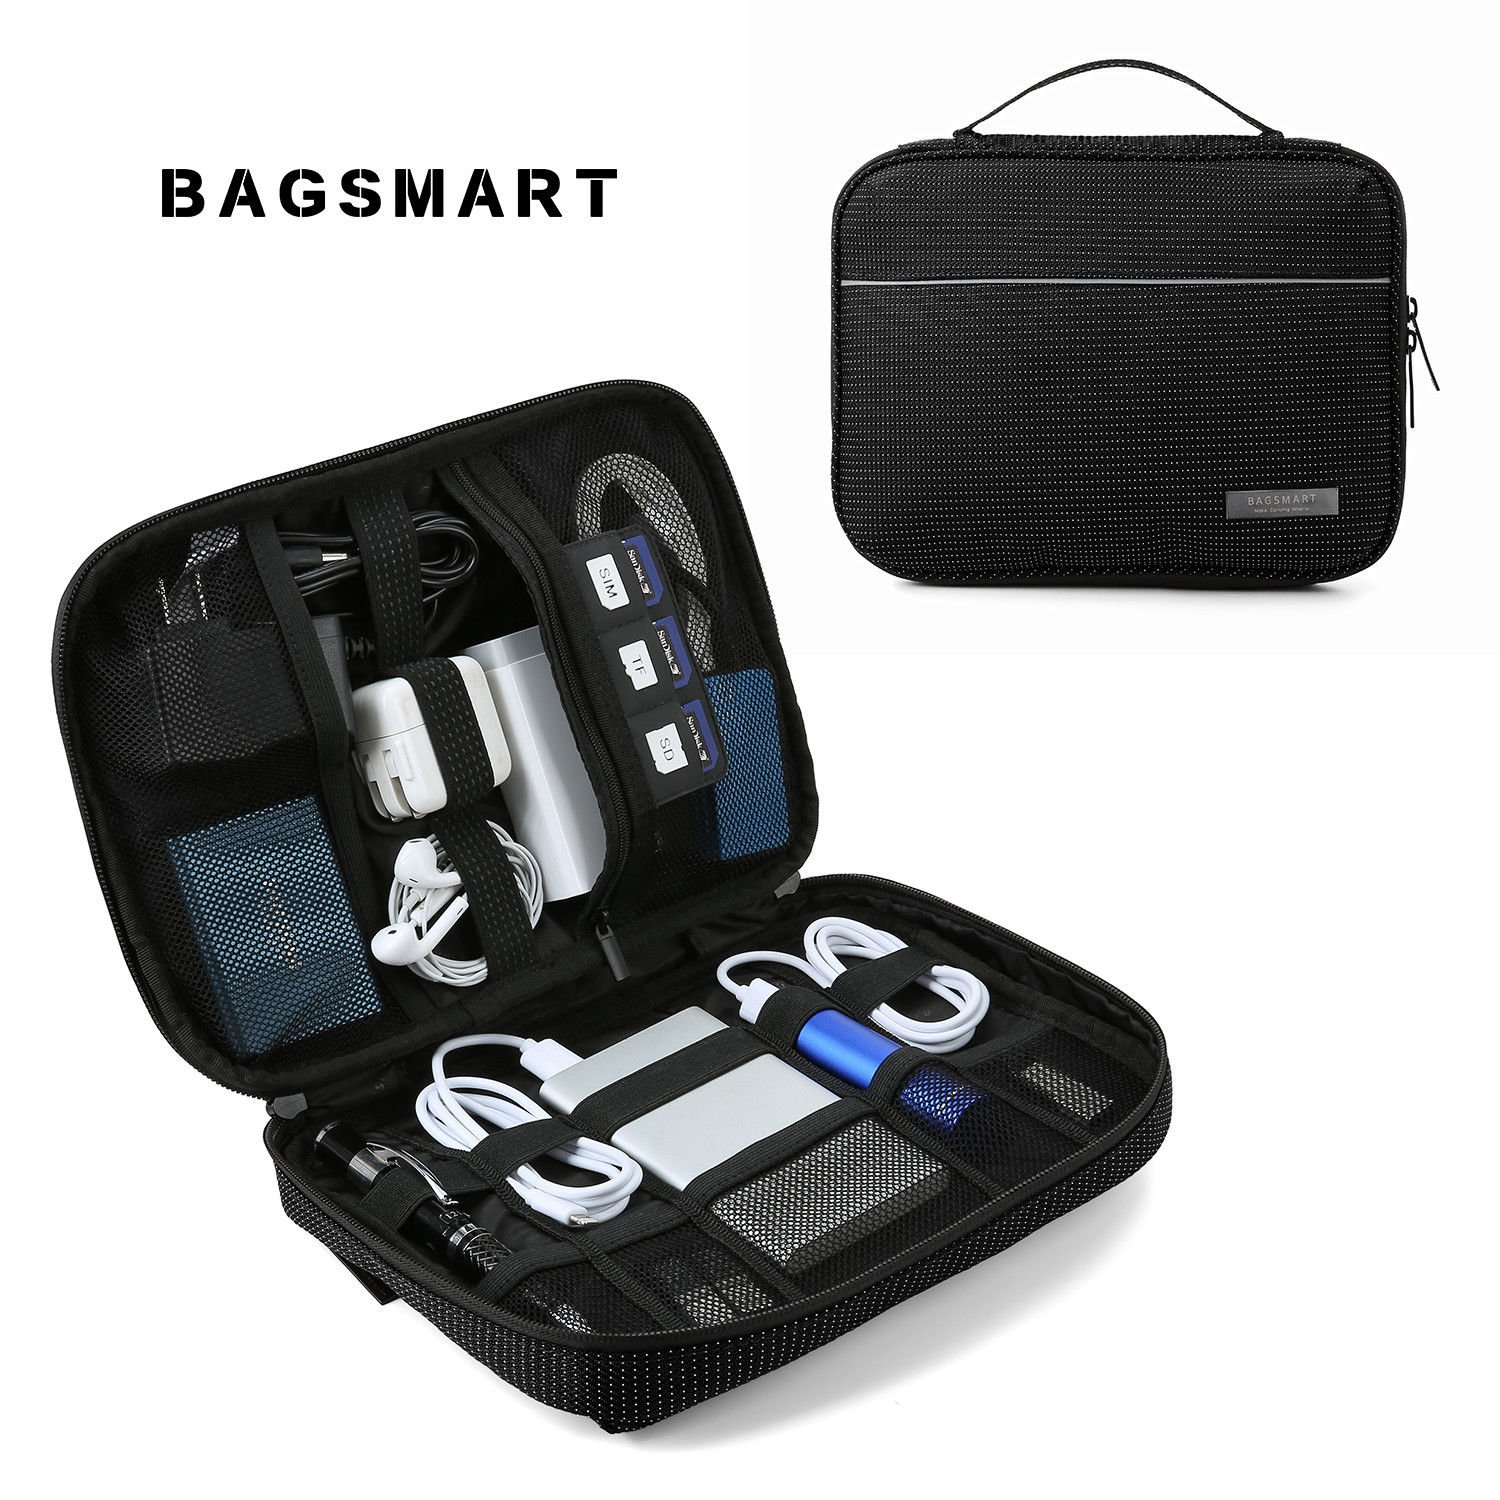 BAGSMART Electronic Accessories Travel Organizer Cases Storage Cable H...